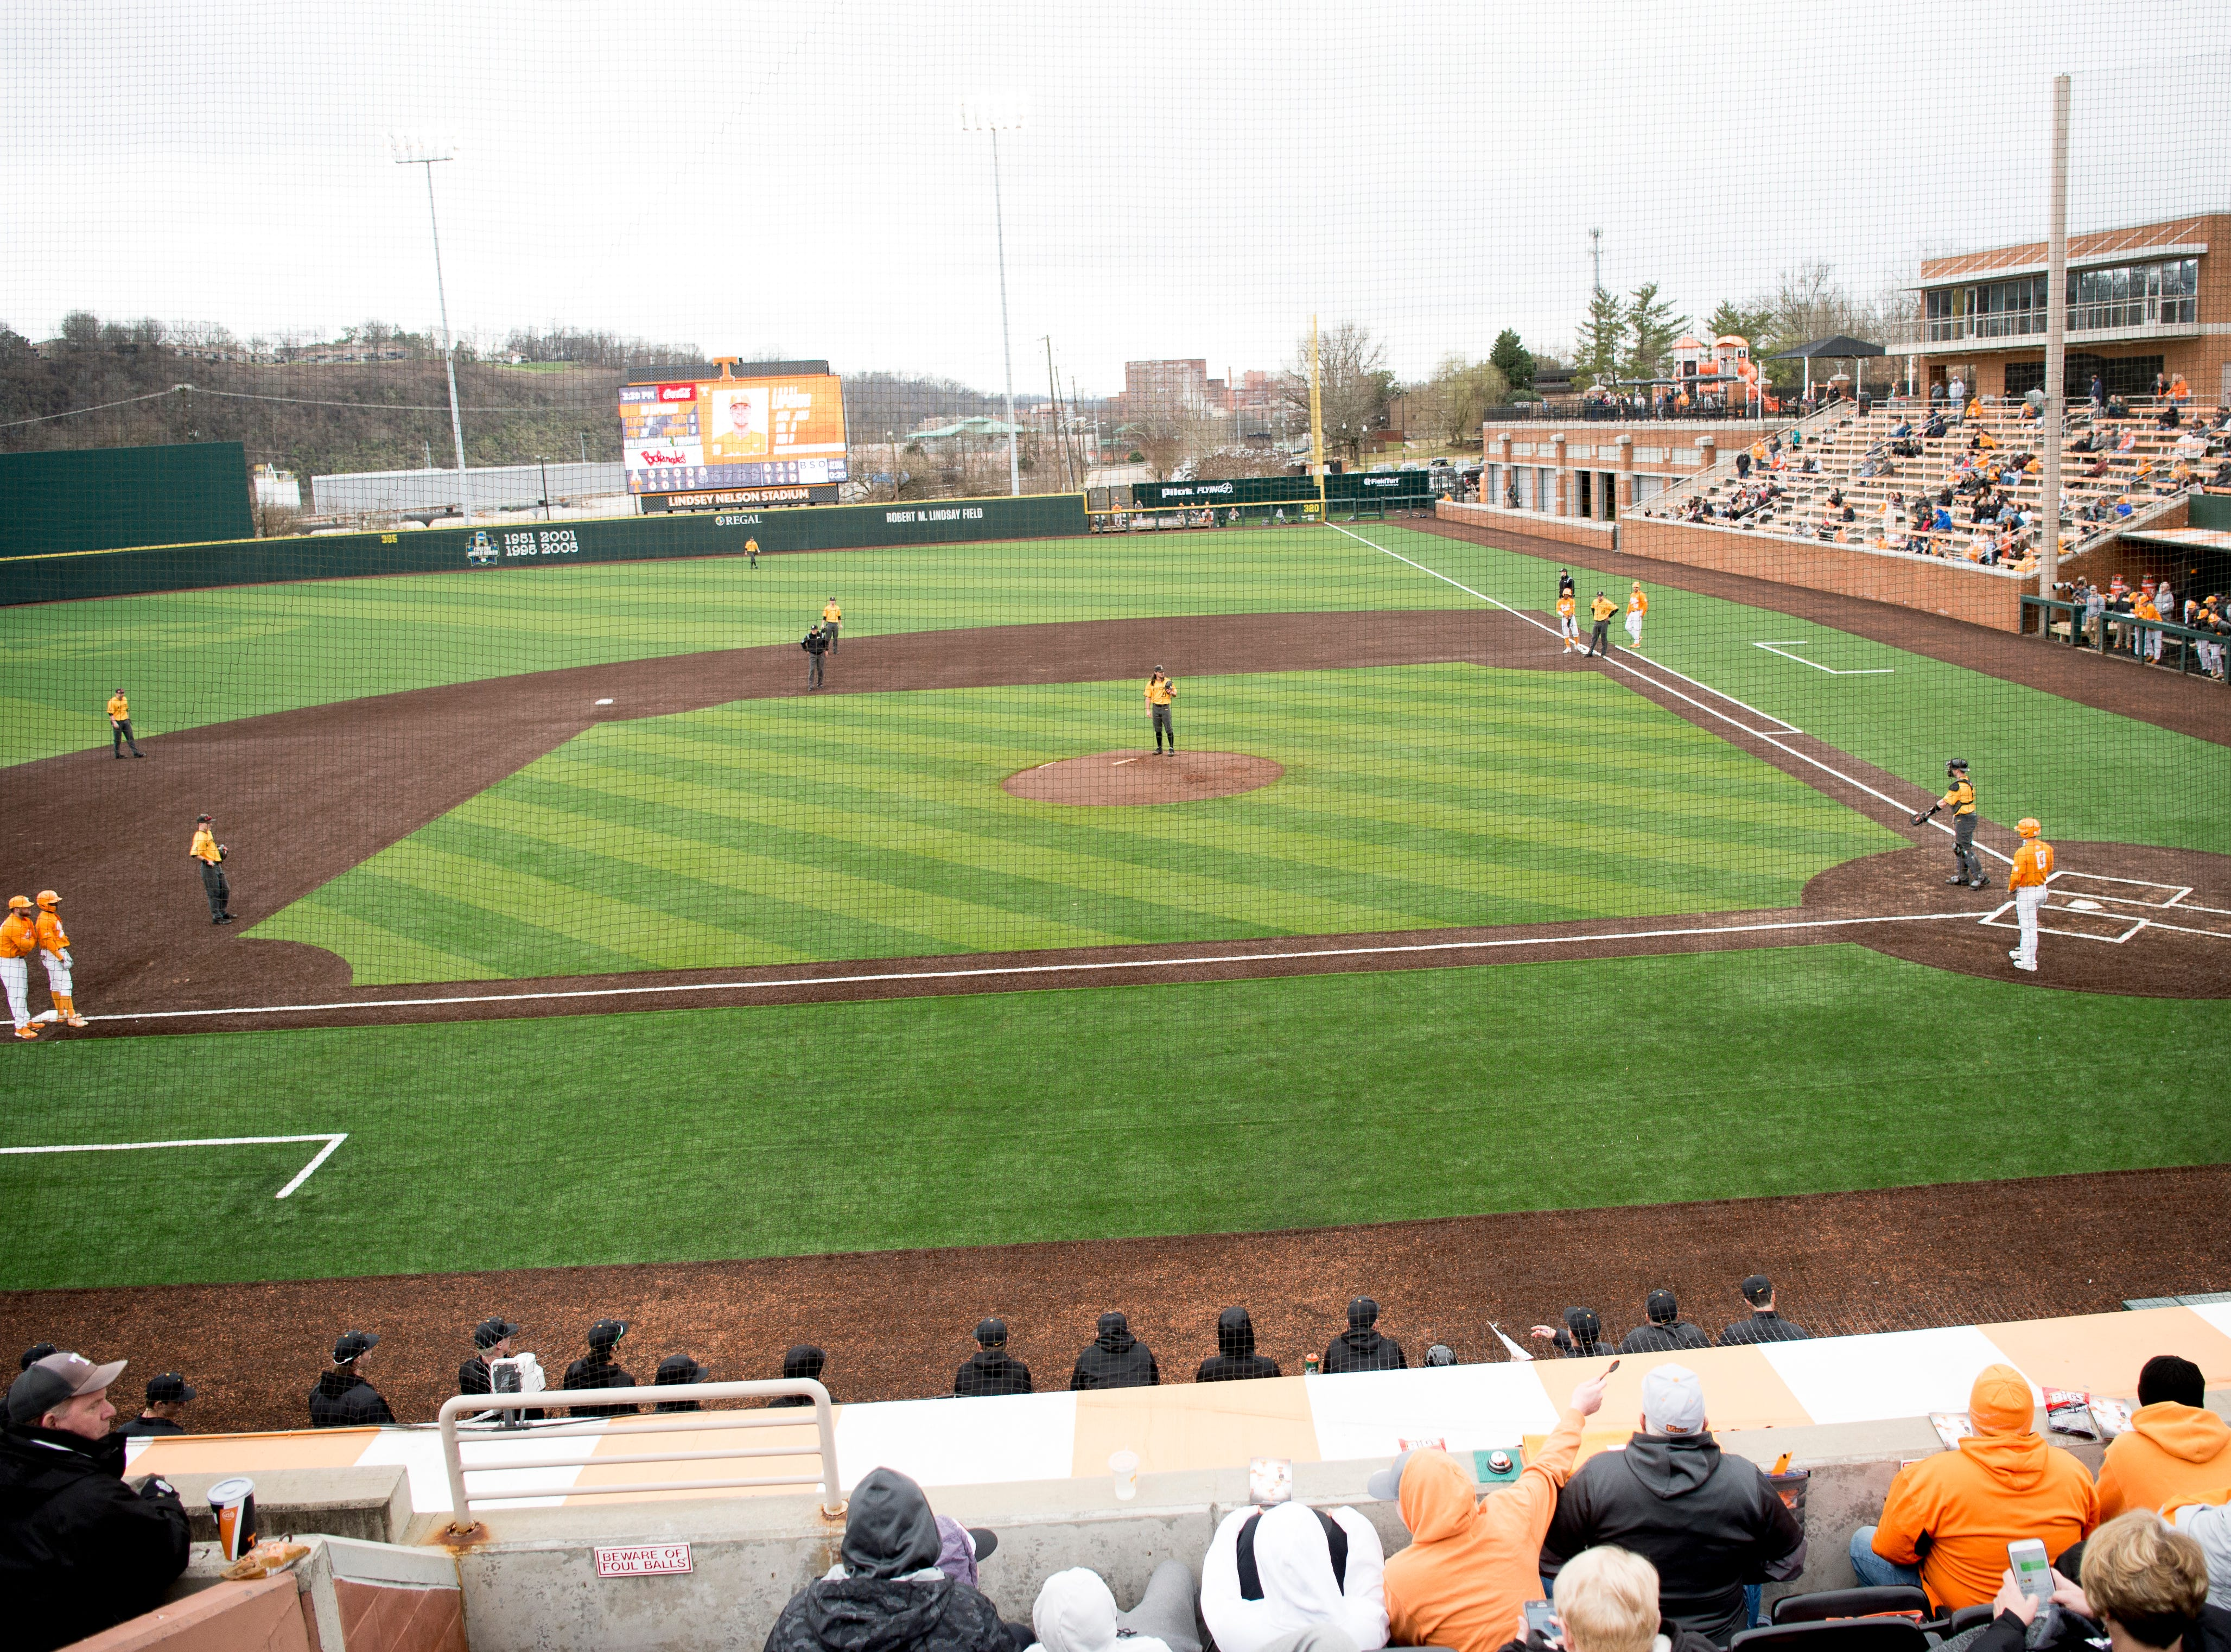 A view of the field during a Tennessee baseball home opener game against Appalachian State at Lindsey Nelson Stadium in Knoxville, Tennessee on Saturday, February 16, 2019.